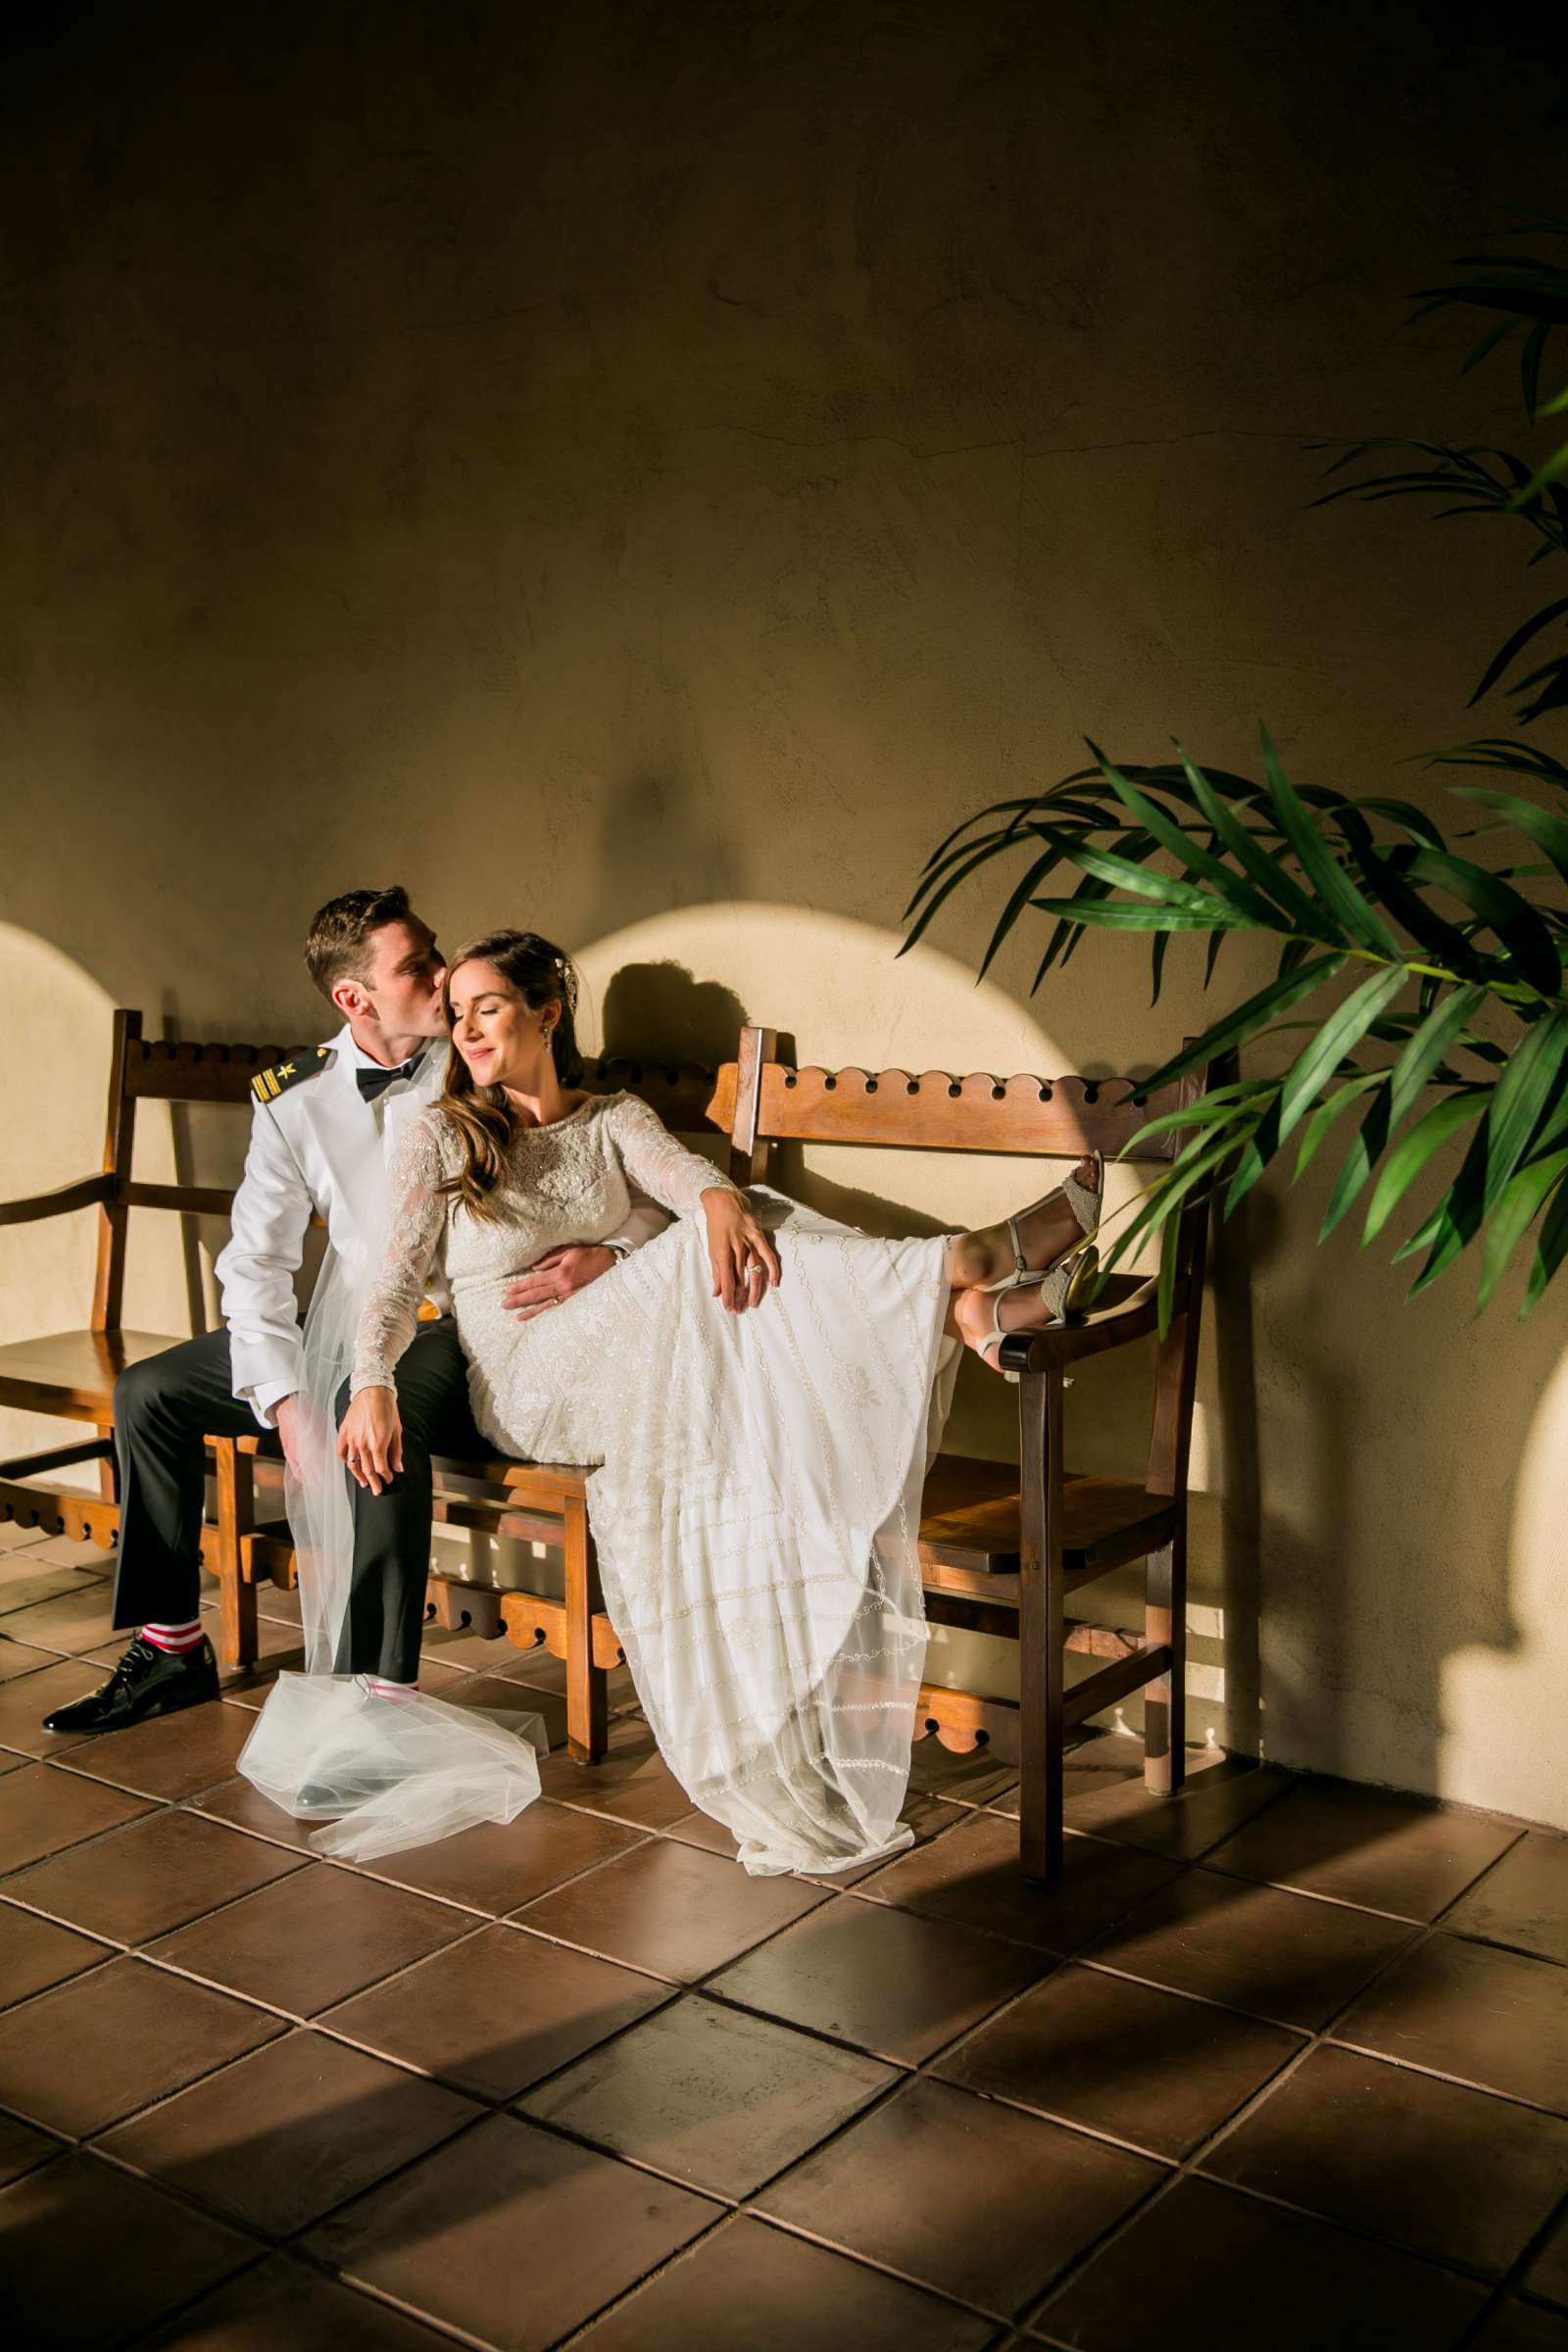 Artsy moment at The Prado Wedding coordinated by First Comes Love Weddings & Events, Megan and Rick Wedding Photo #1 by True Photography